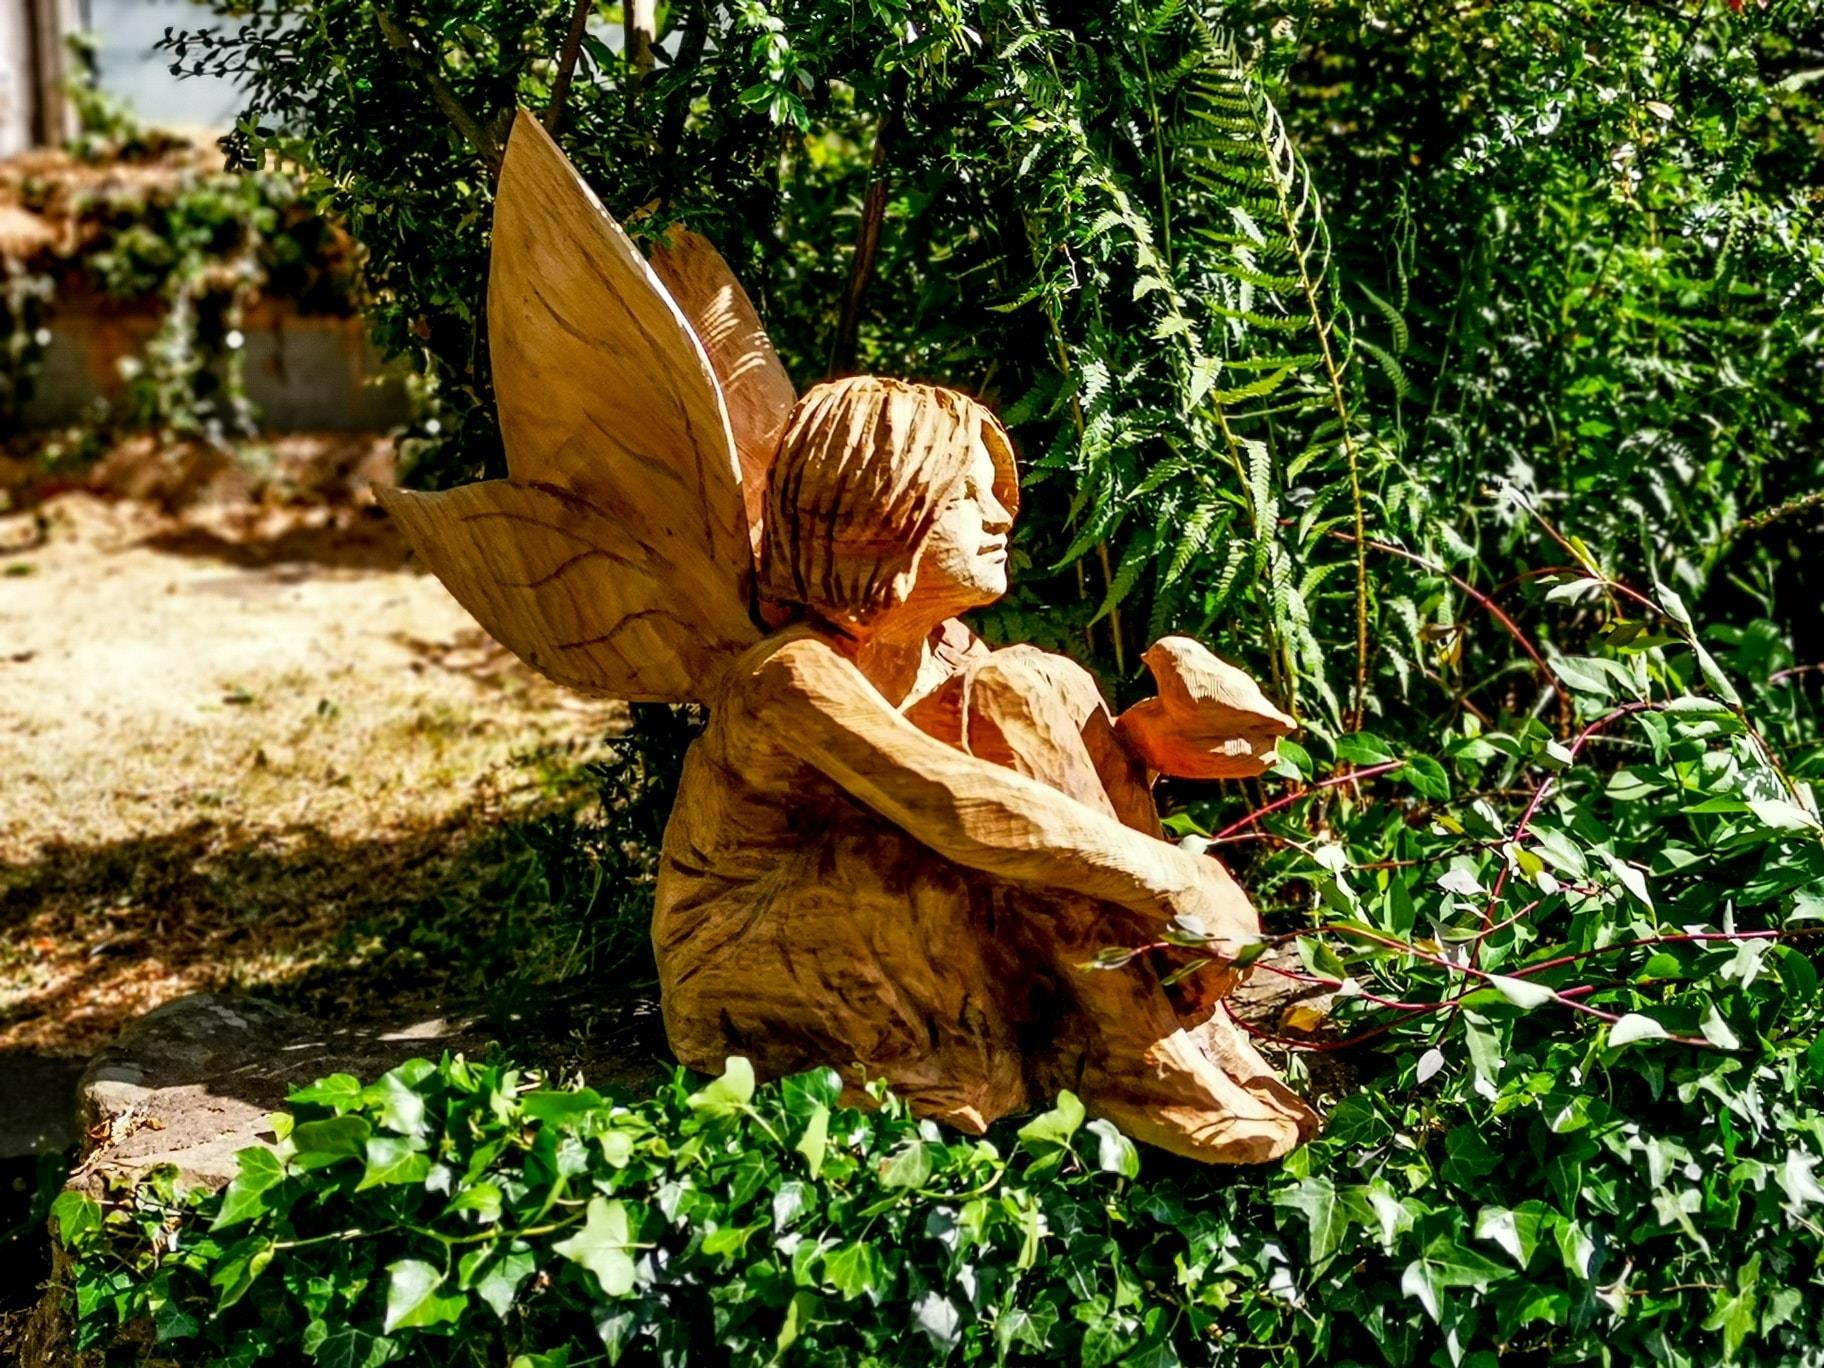 sculptures of 2020 by simon o'rourke. A girl is depicted as a fairy sitting surrounded by greenery. A robin sits on her hand as if in conversation with her.